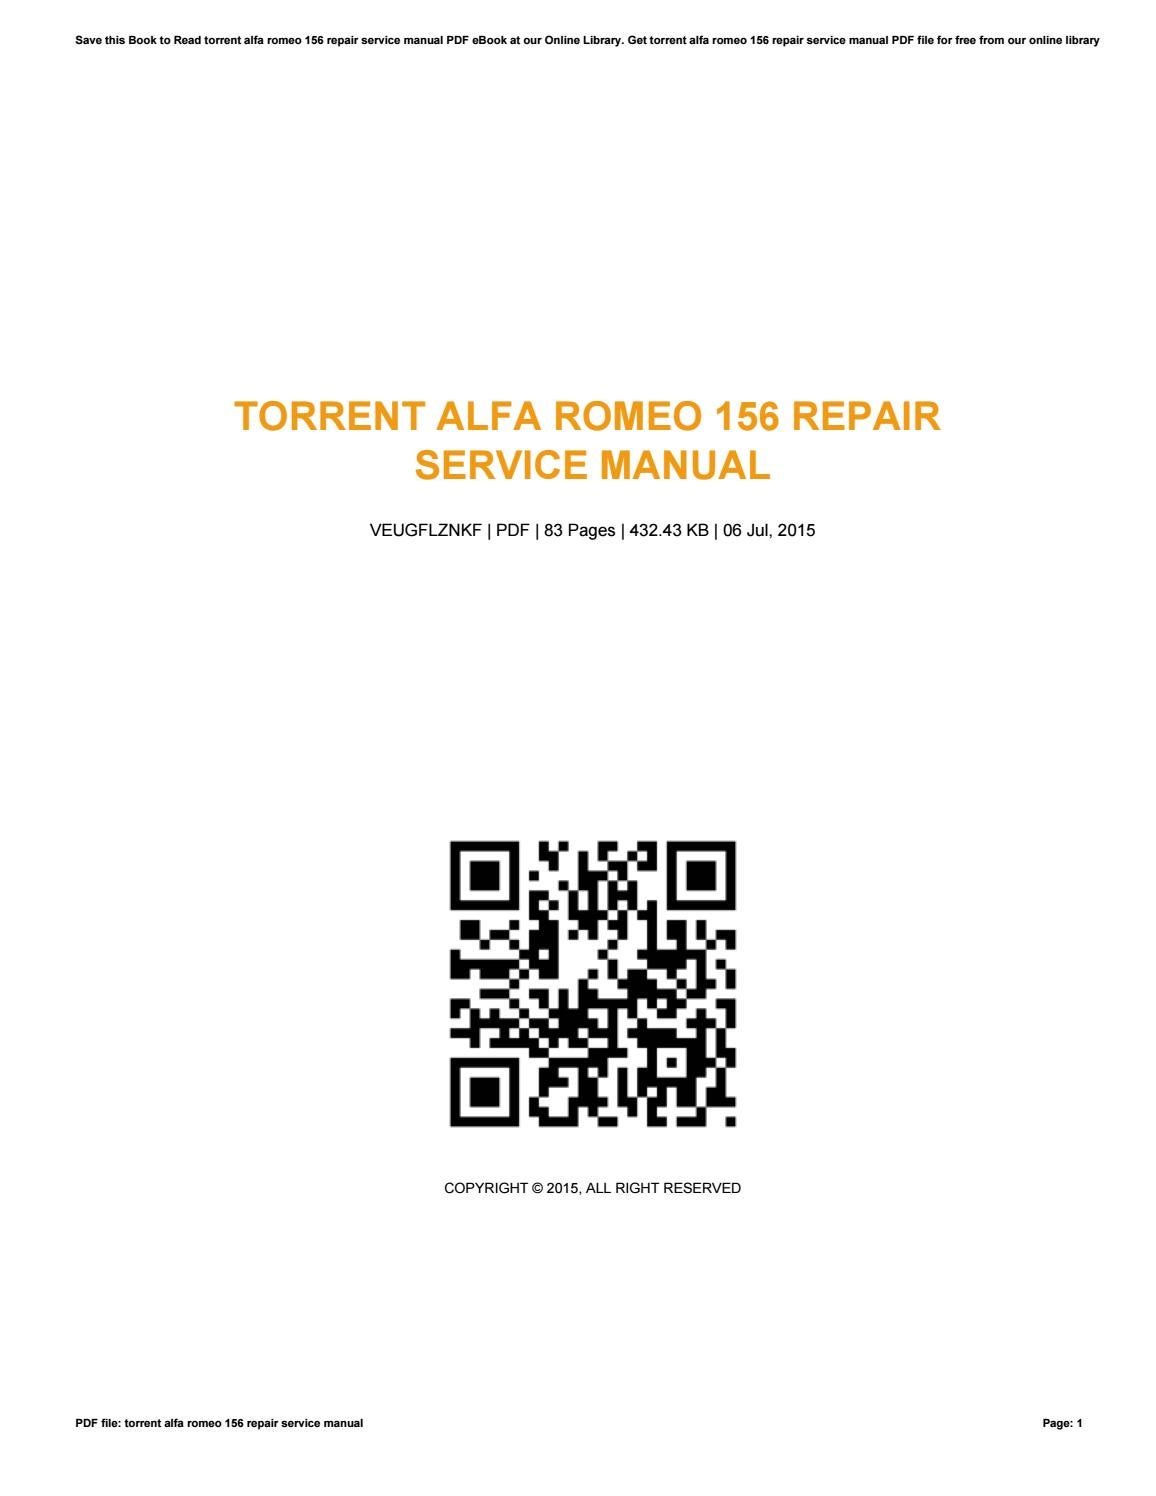 Torrent alfa romeo 156 repair service manual by